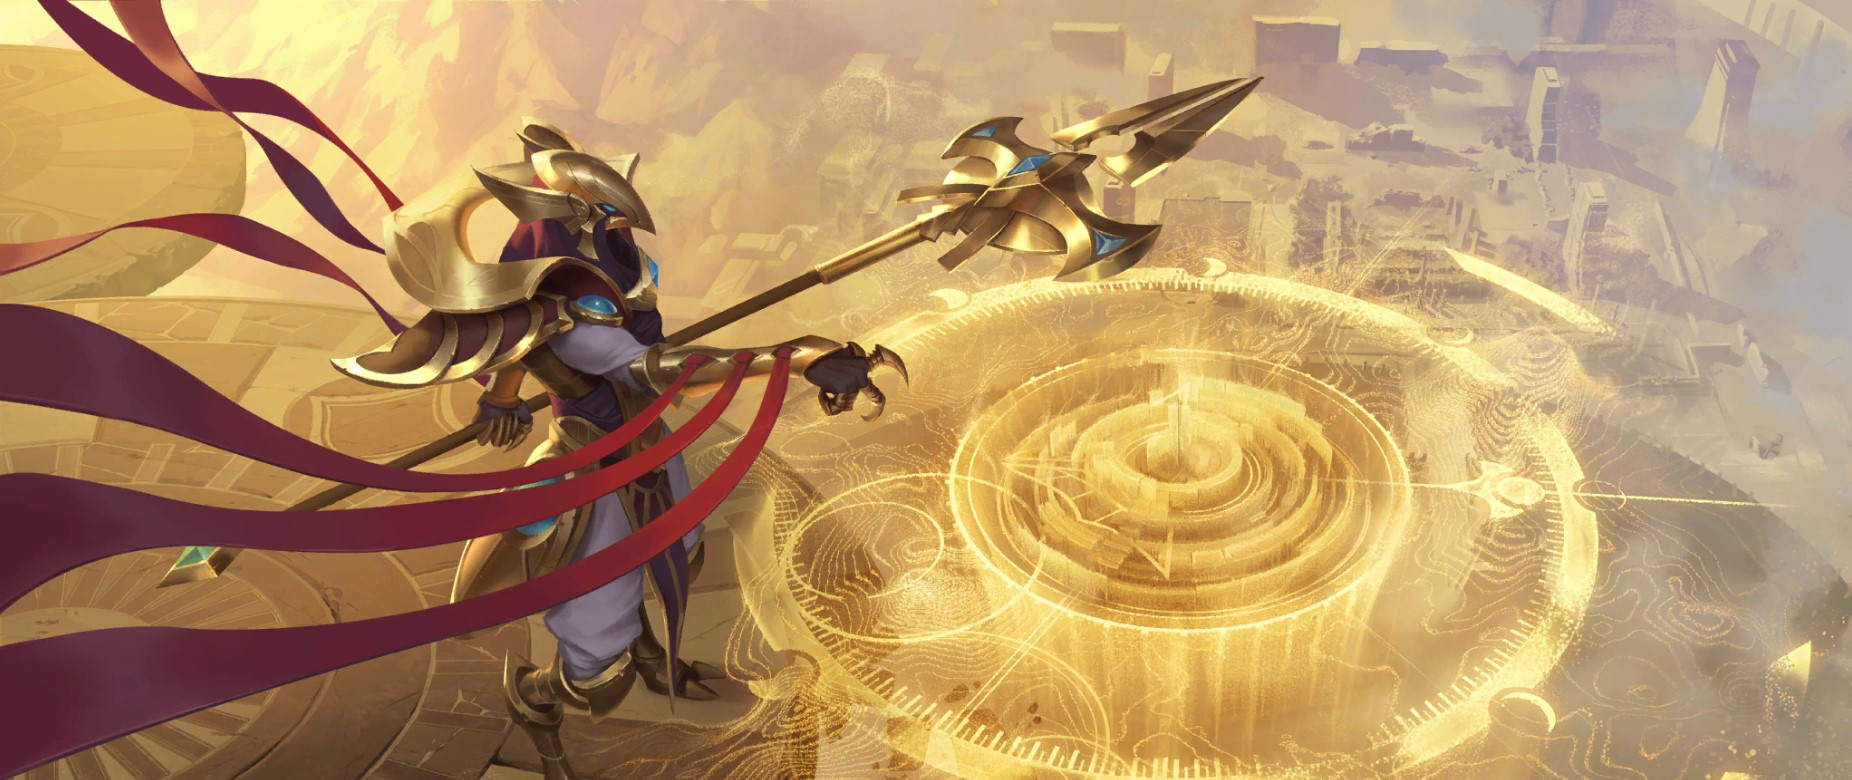 Empires of the Ascended LoR Card Impressions: Azir (Arise!, Emperor's Deck, and More)